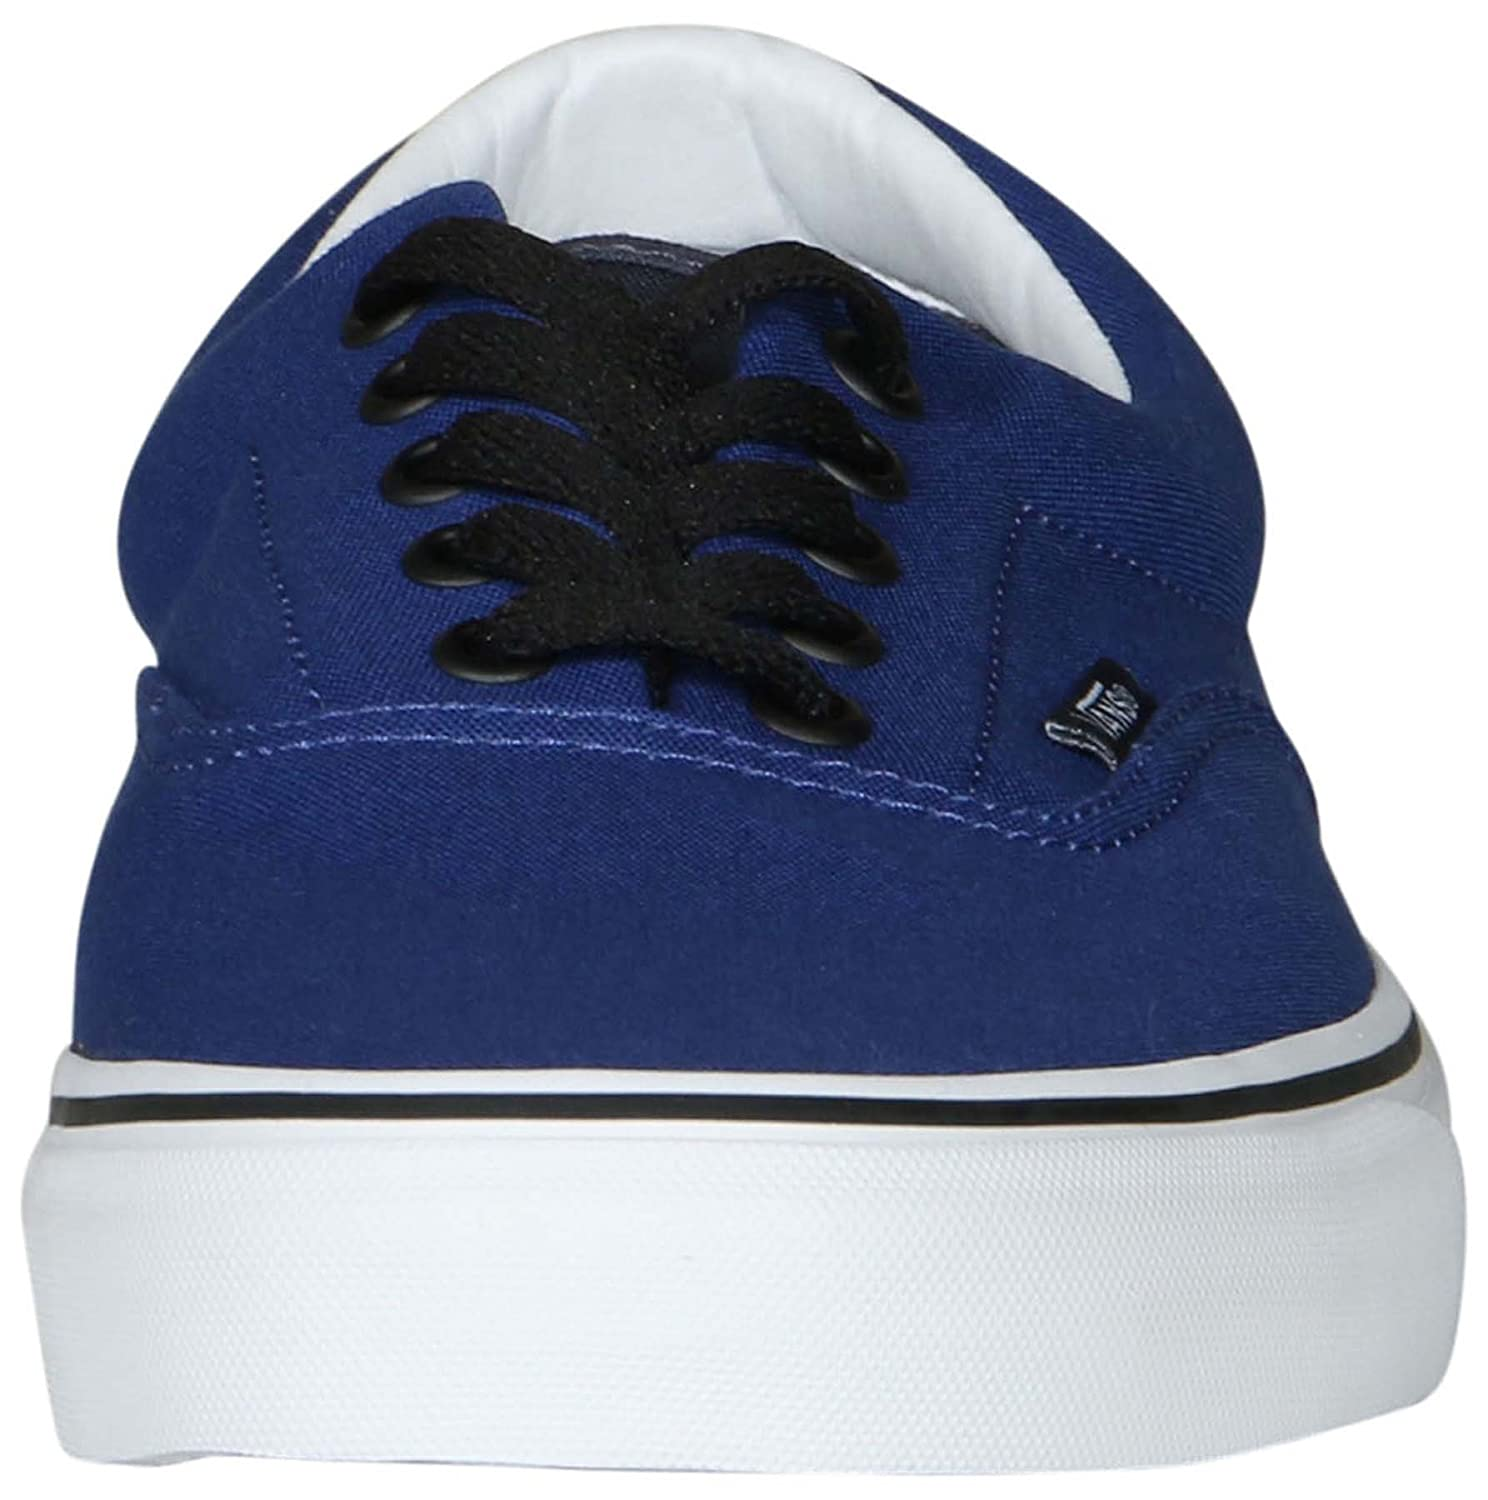 Vans Unisex Era Skate Shoes, in Classic Low-Top Lace-up Style in Shoes, Durable Double-Stitched Canvas and Original Waffle Outsole B019FVXIZI 7 M US Women / 5.5 M US Men|Sodalite Blue/Parisian Night 243061